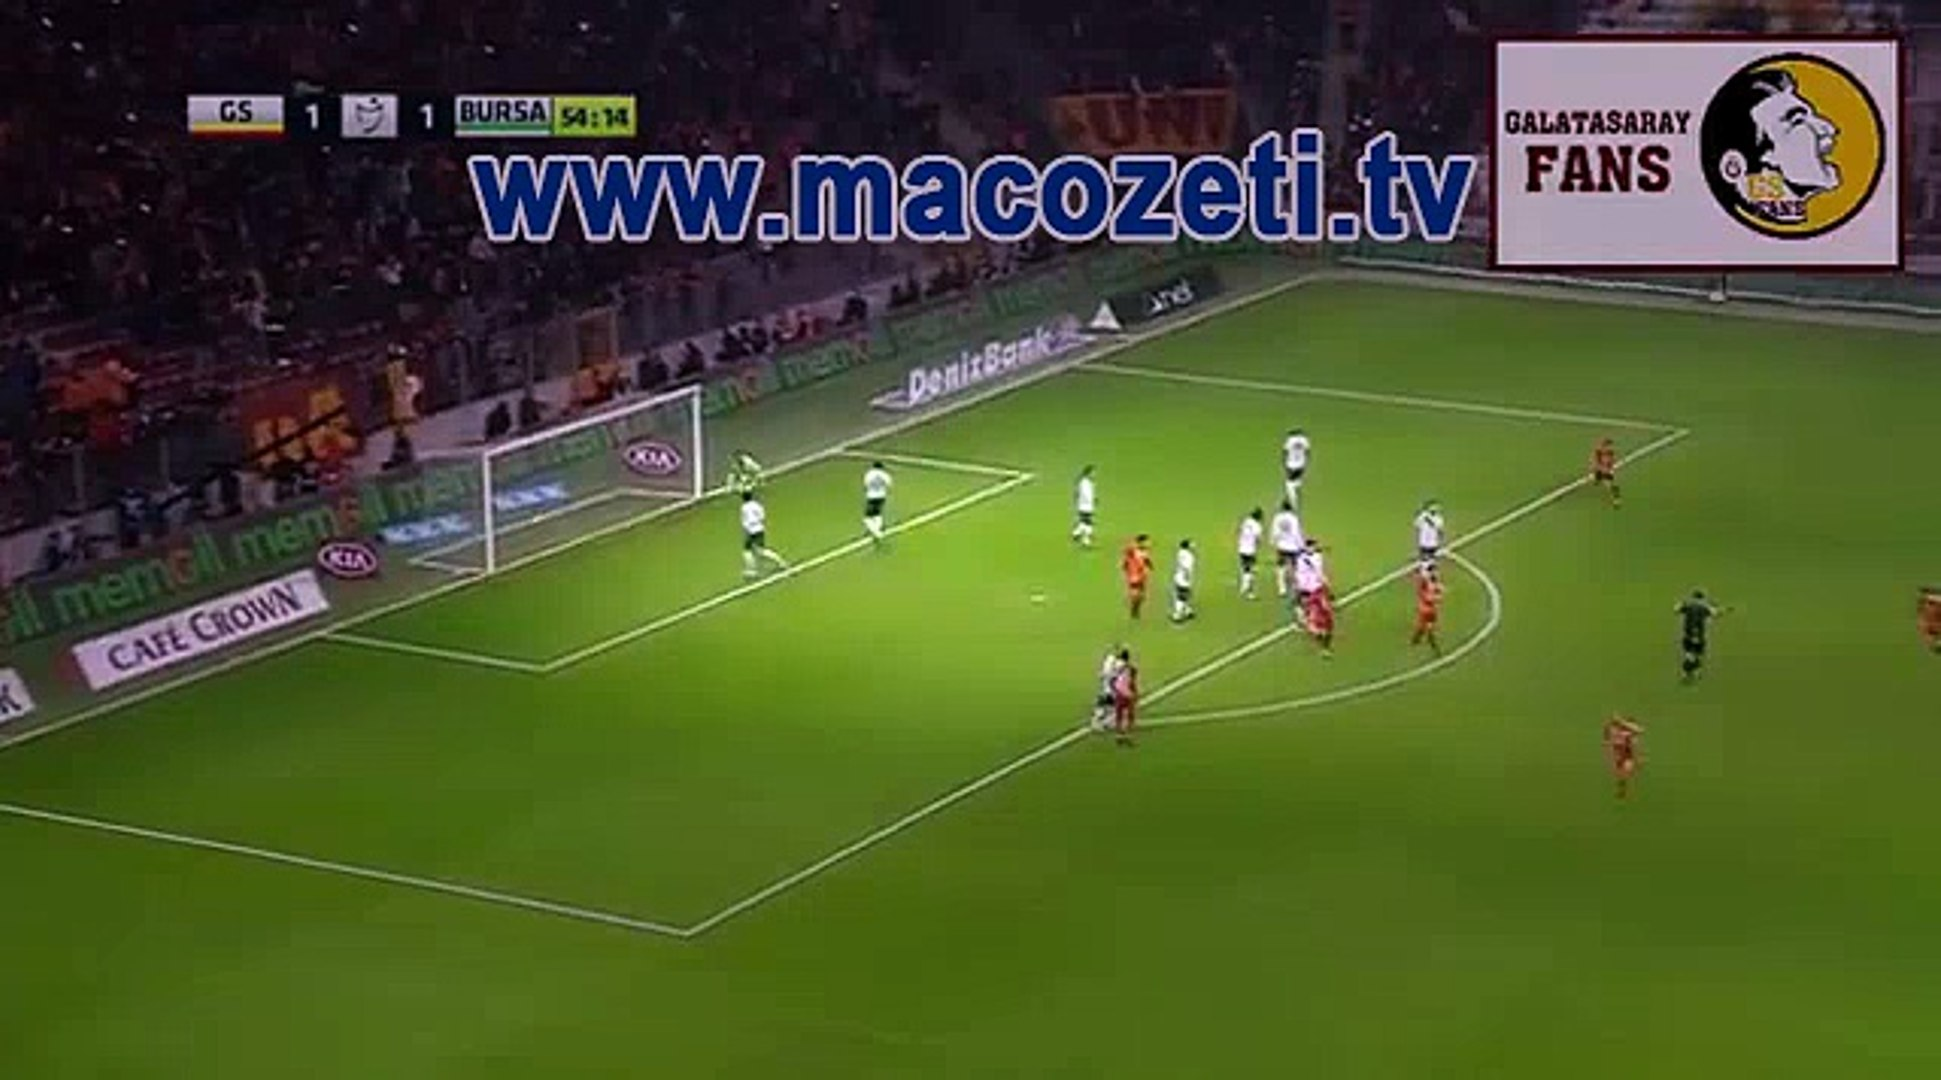 25.11.16 bursa- galatasaray mac ozeti ve goller [HD] | www.macozeti.tv